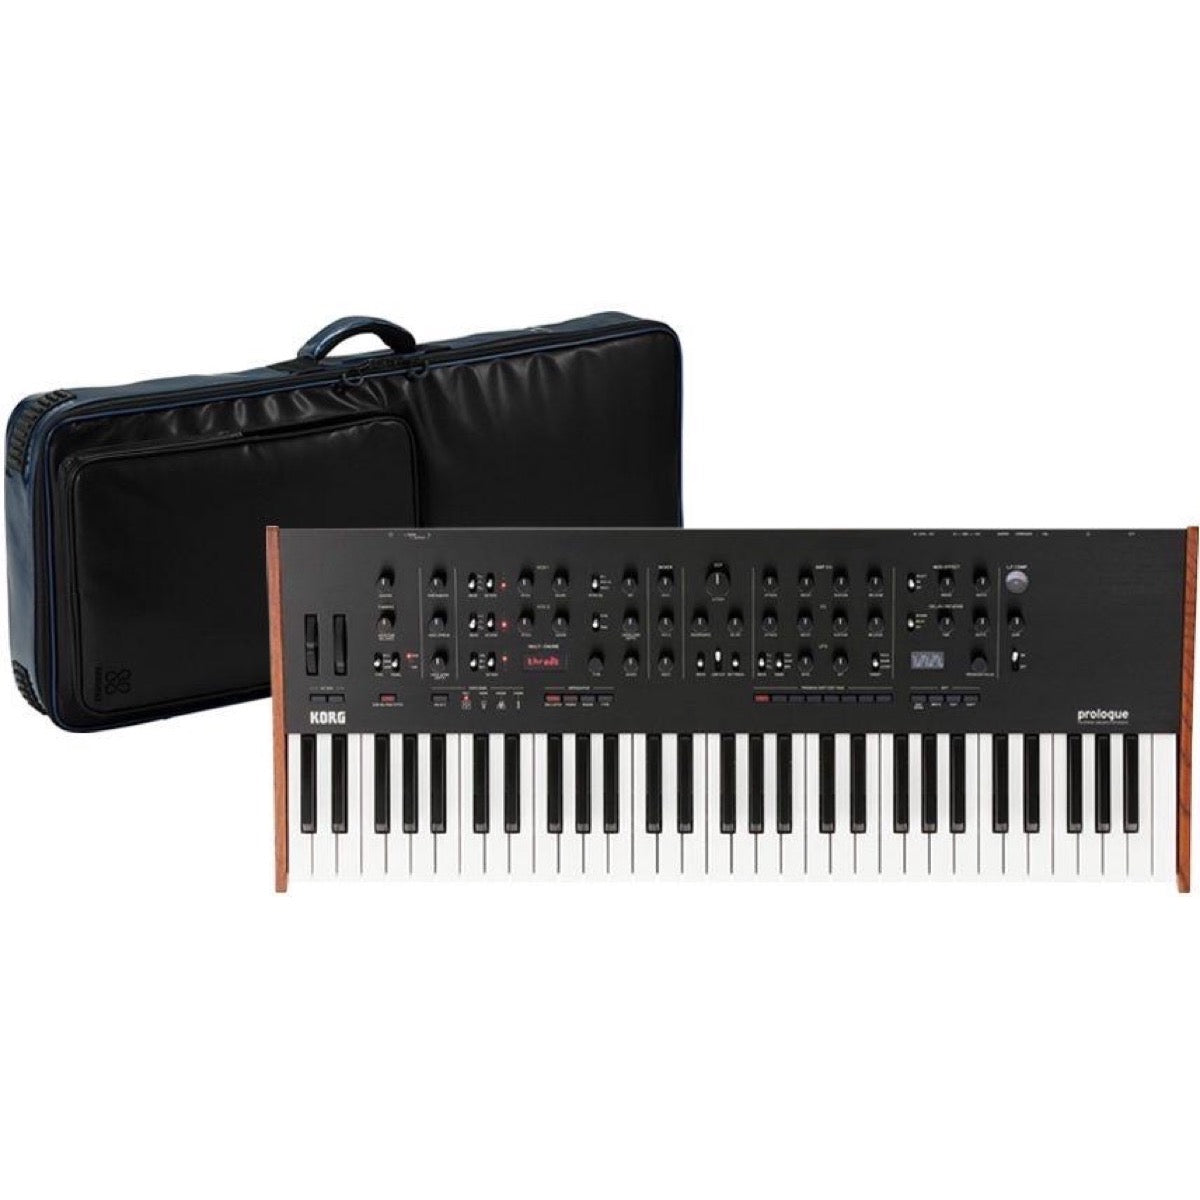 Korg Prologue 16-Voice Analog Keyboard Synthesizer, 61-Key, with Sequenz Bag